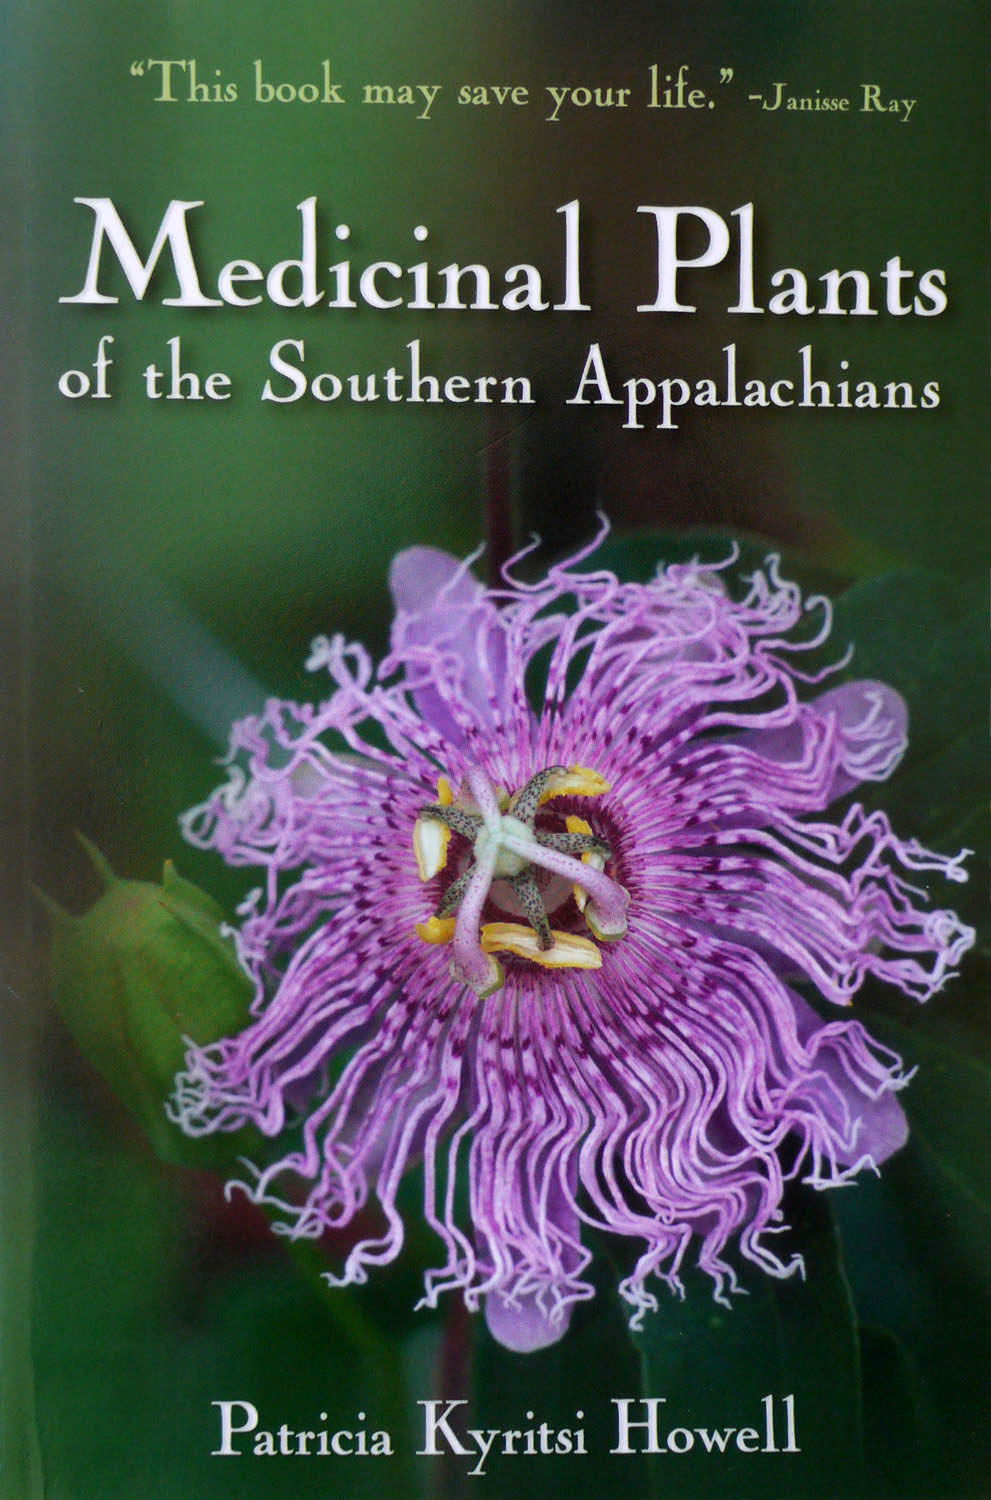 Medicinal Plants of the Southern Appalachians